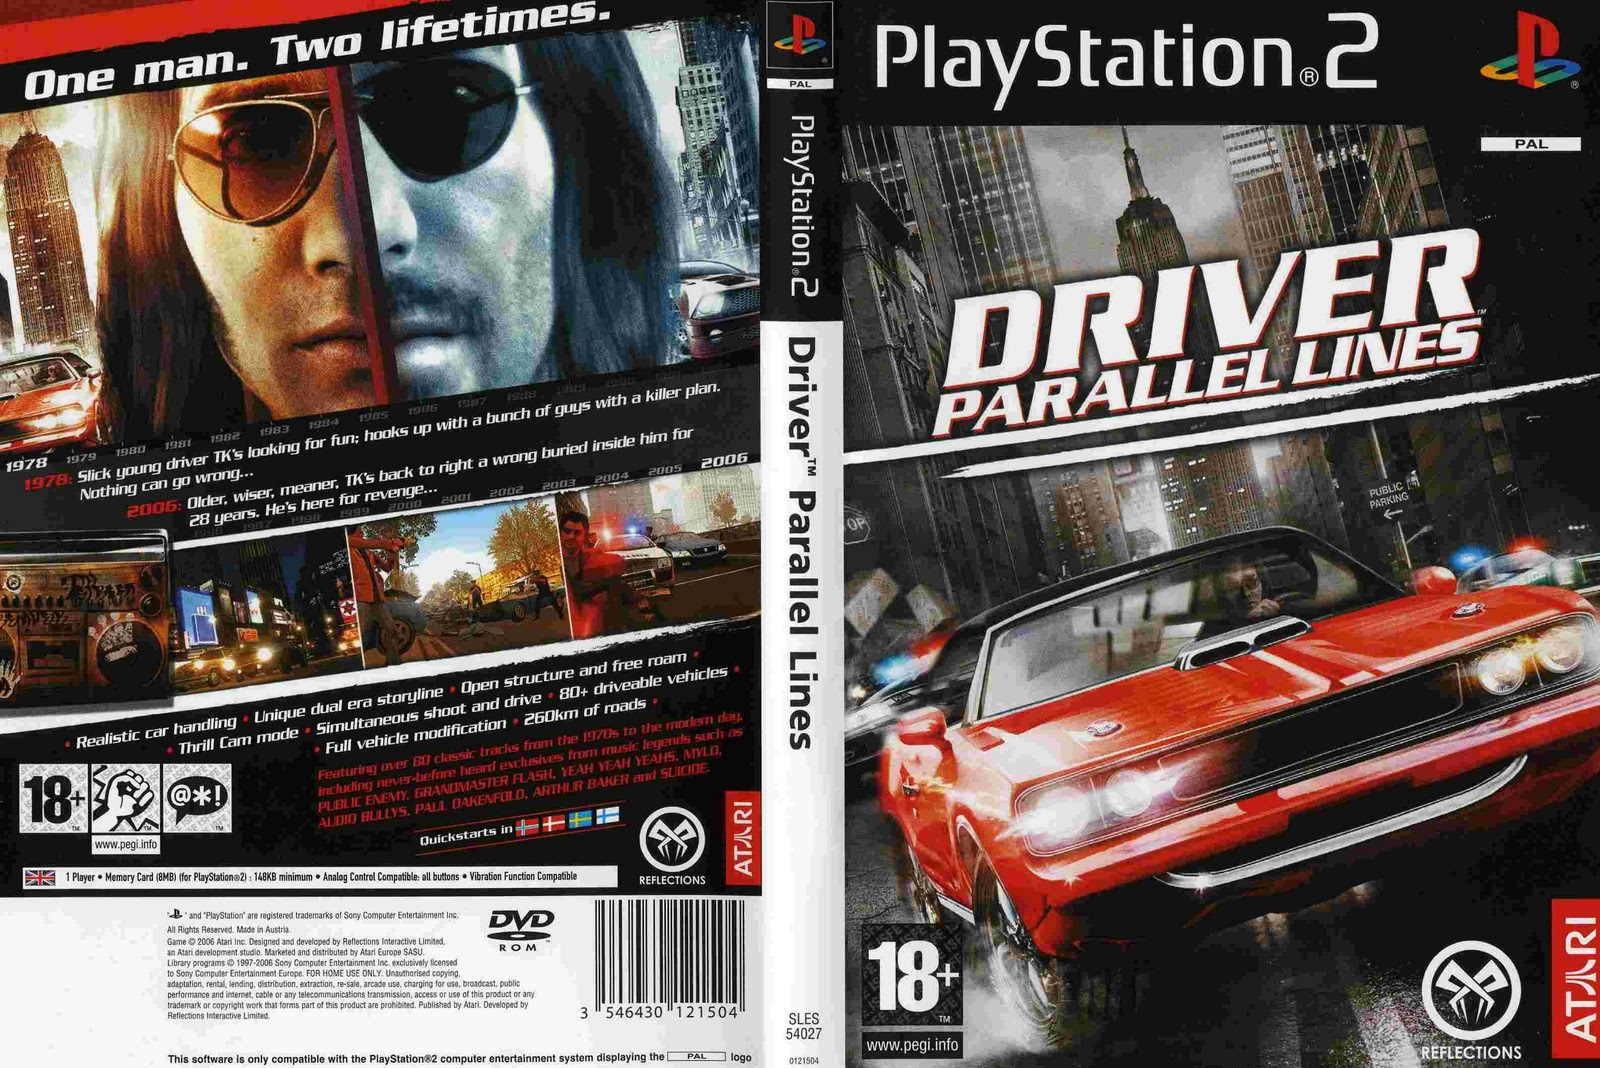 pc Playstation 2 Wii juego xbox driver paraline lines